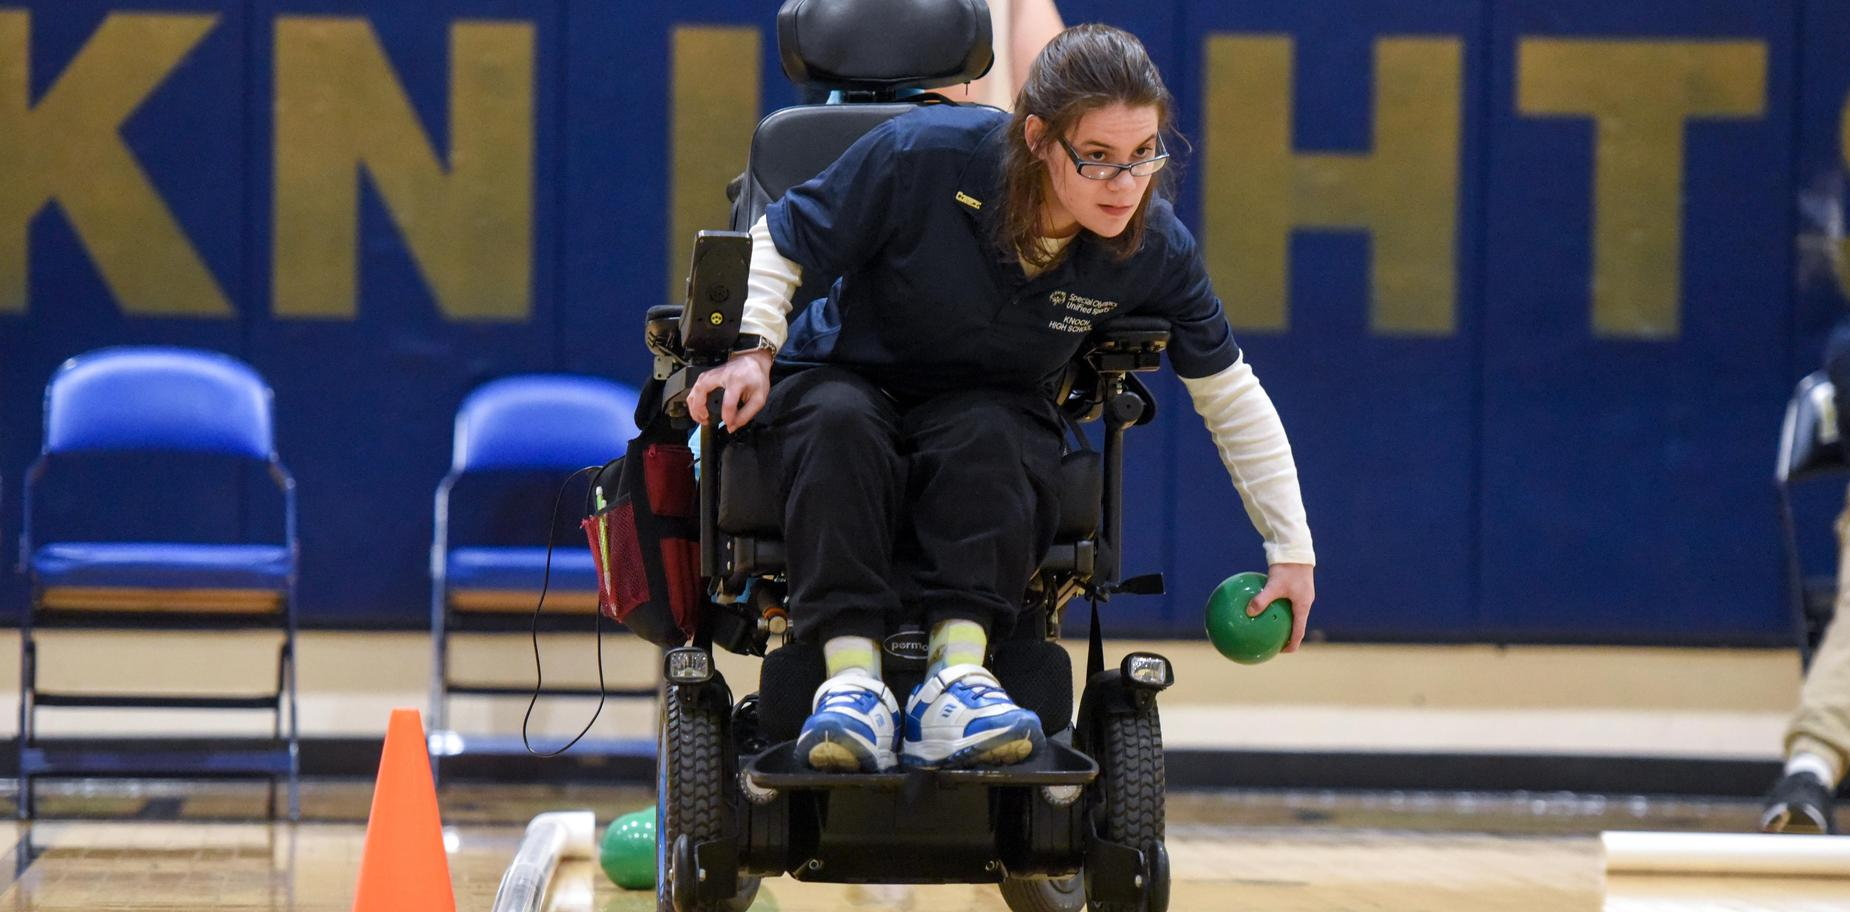 Knoch Bocce player throwing ball